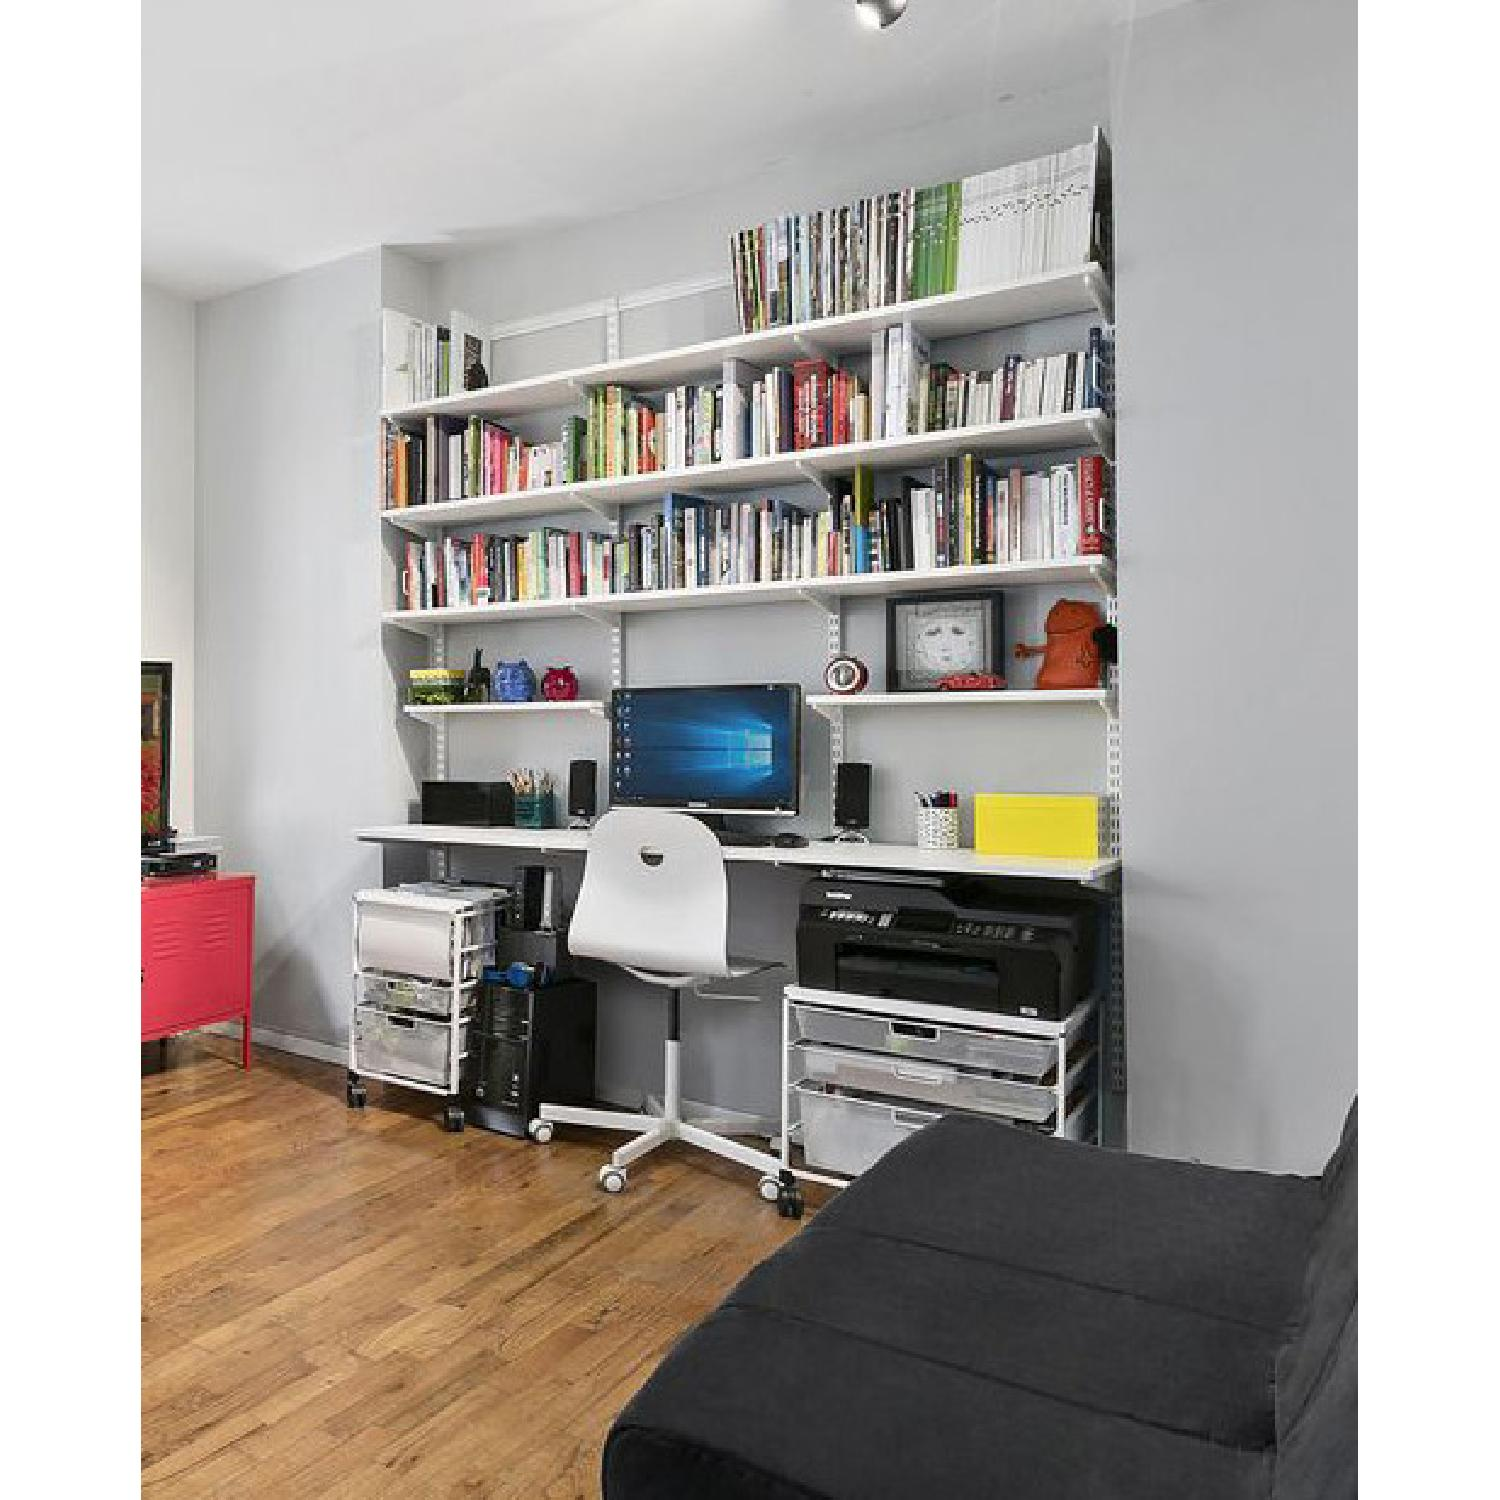 Container Store Elfa Desk and Bookshelf Components - image-1